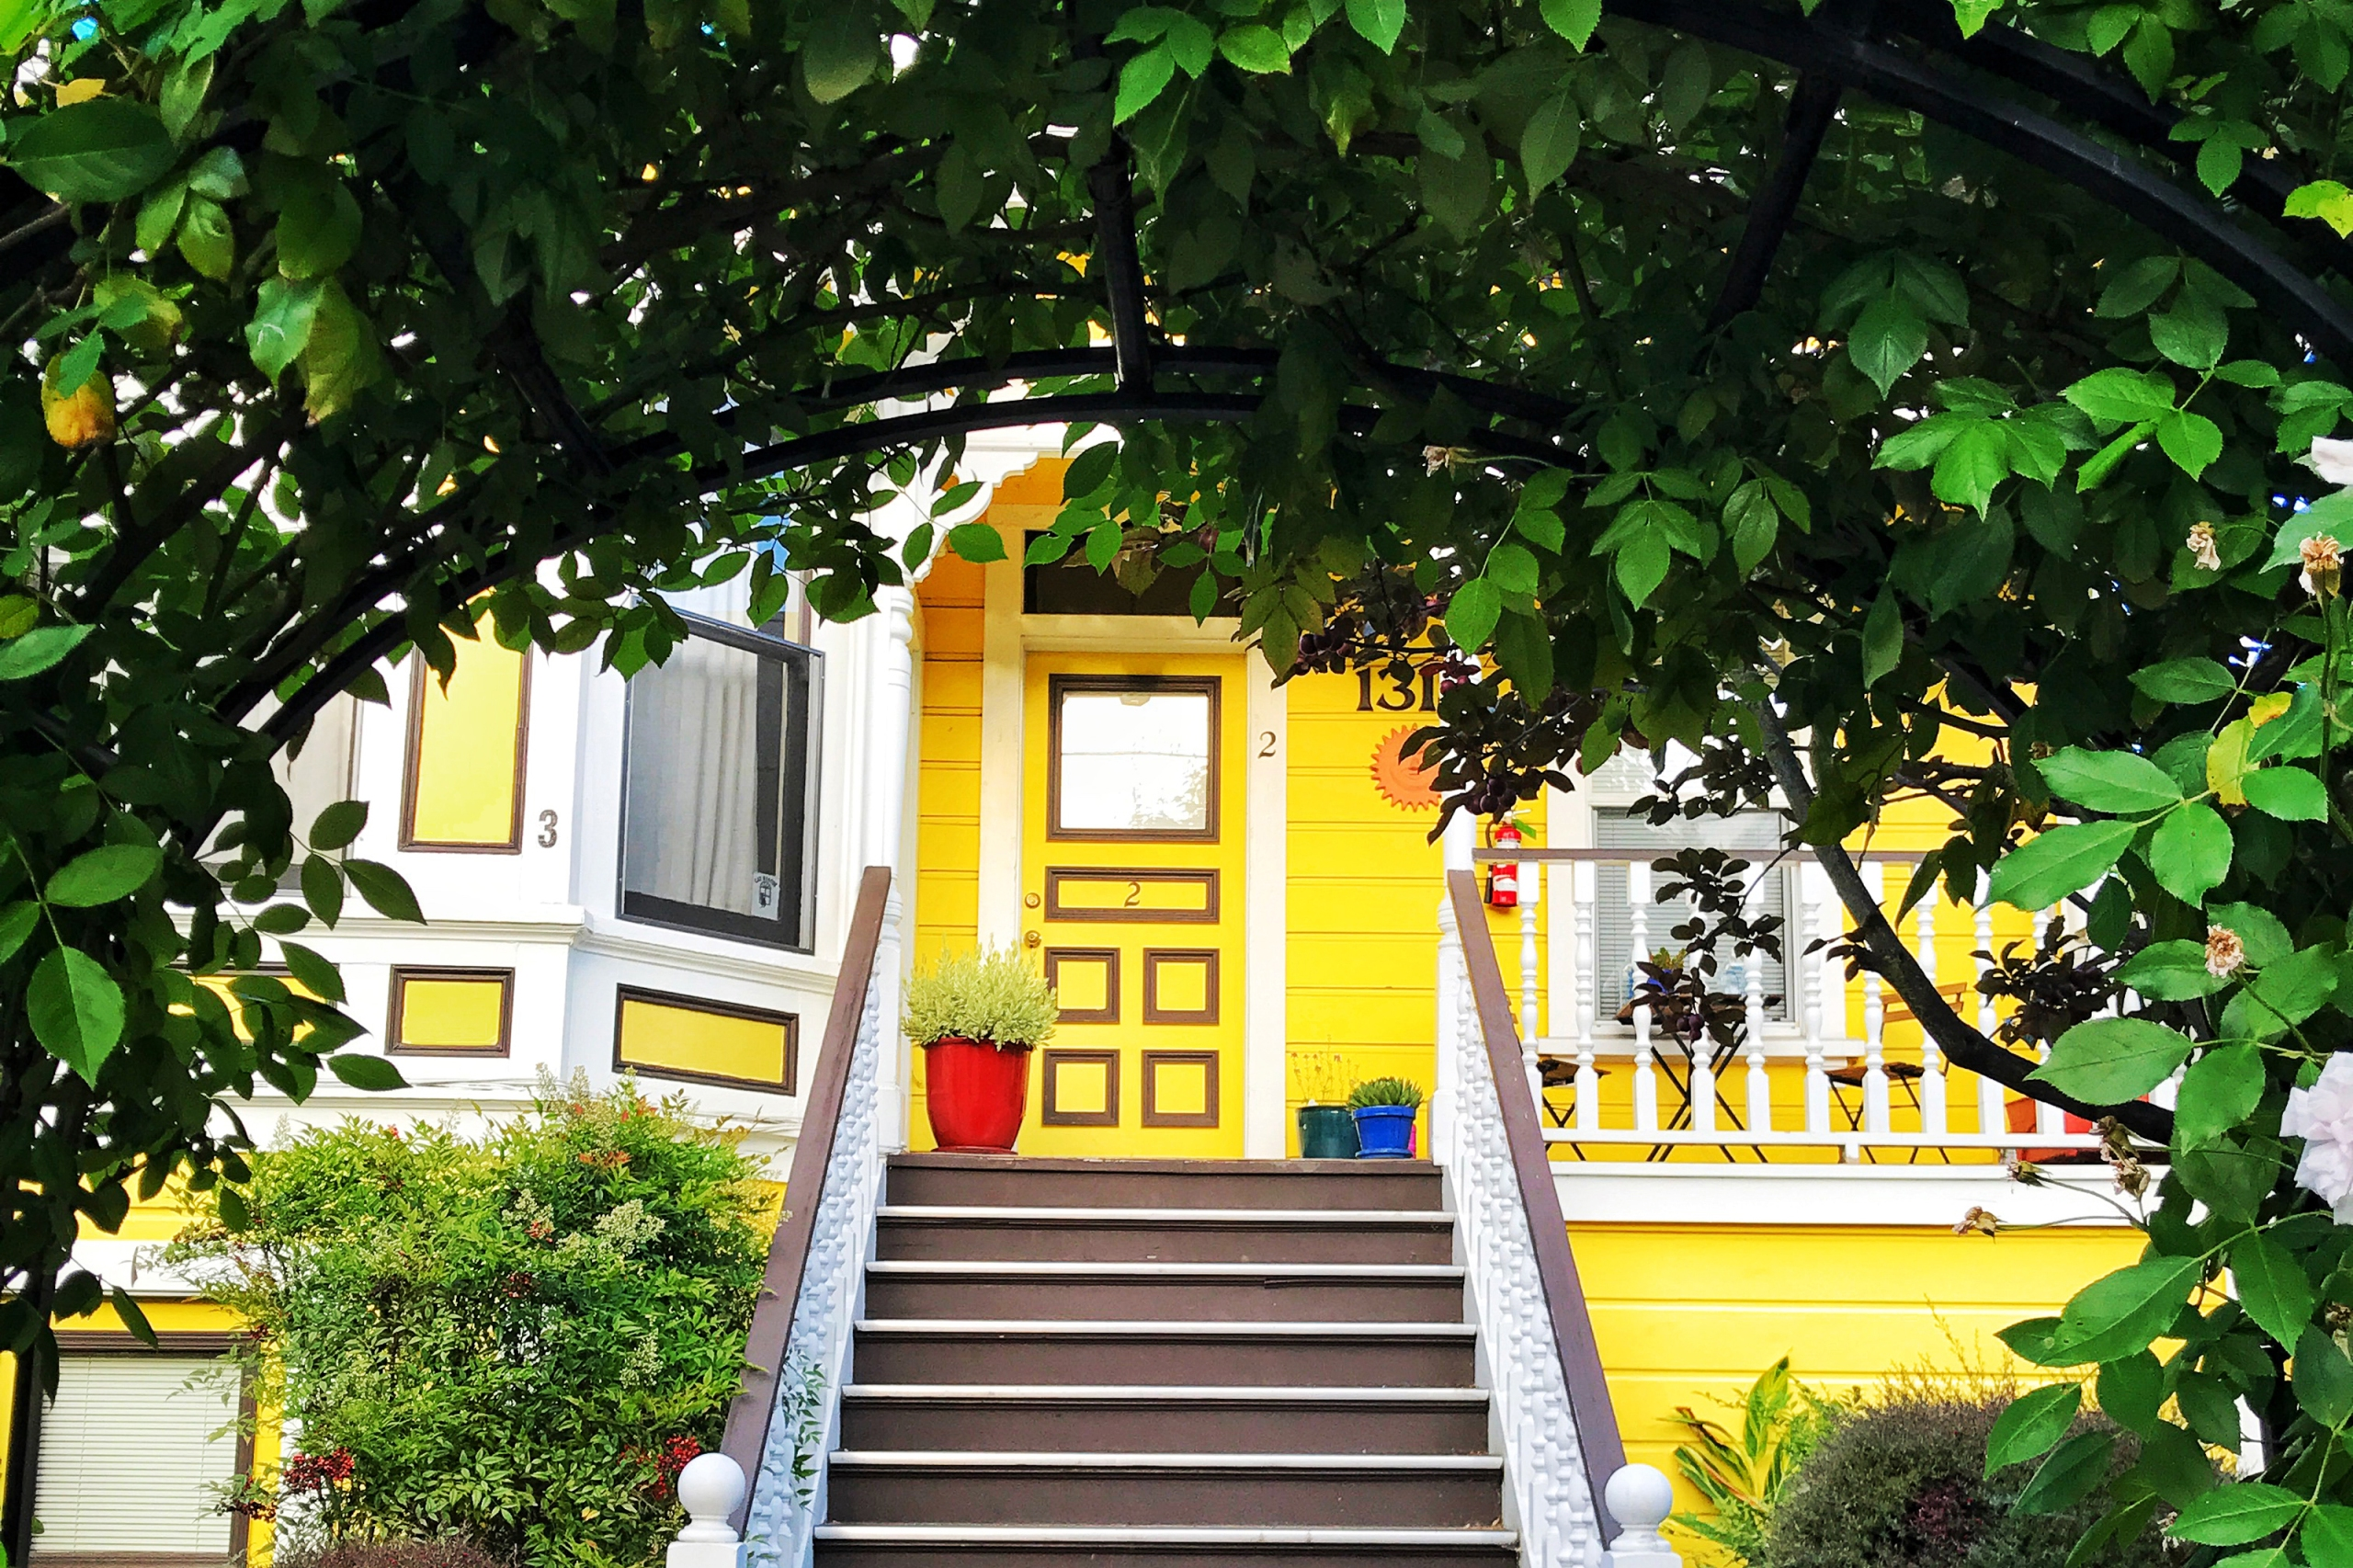 Foliage archway framing front steps and yellow door